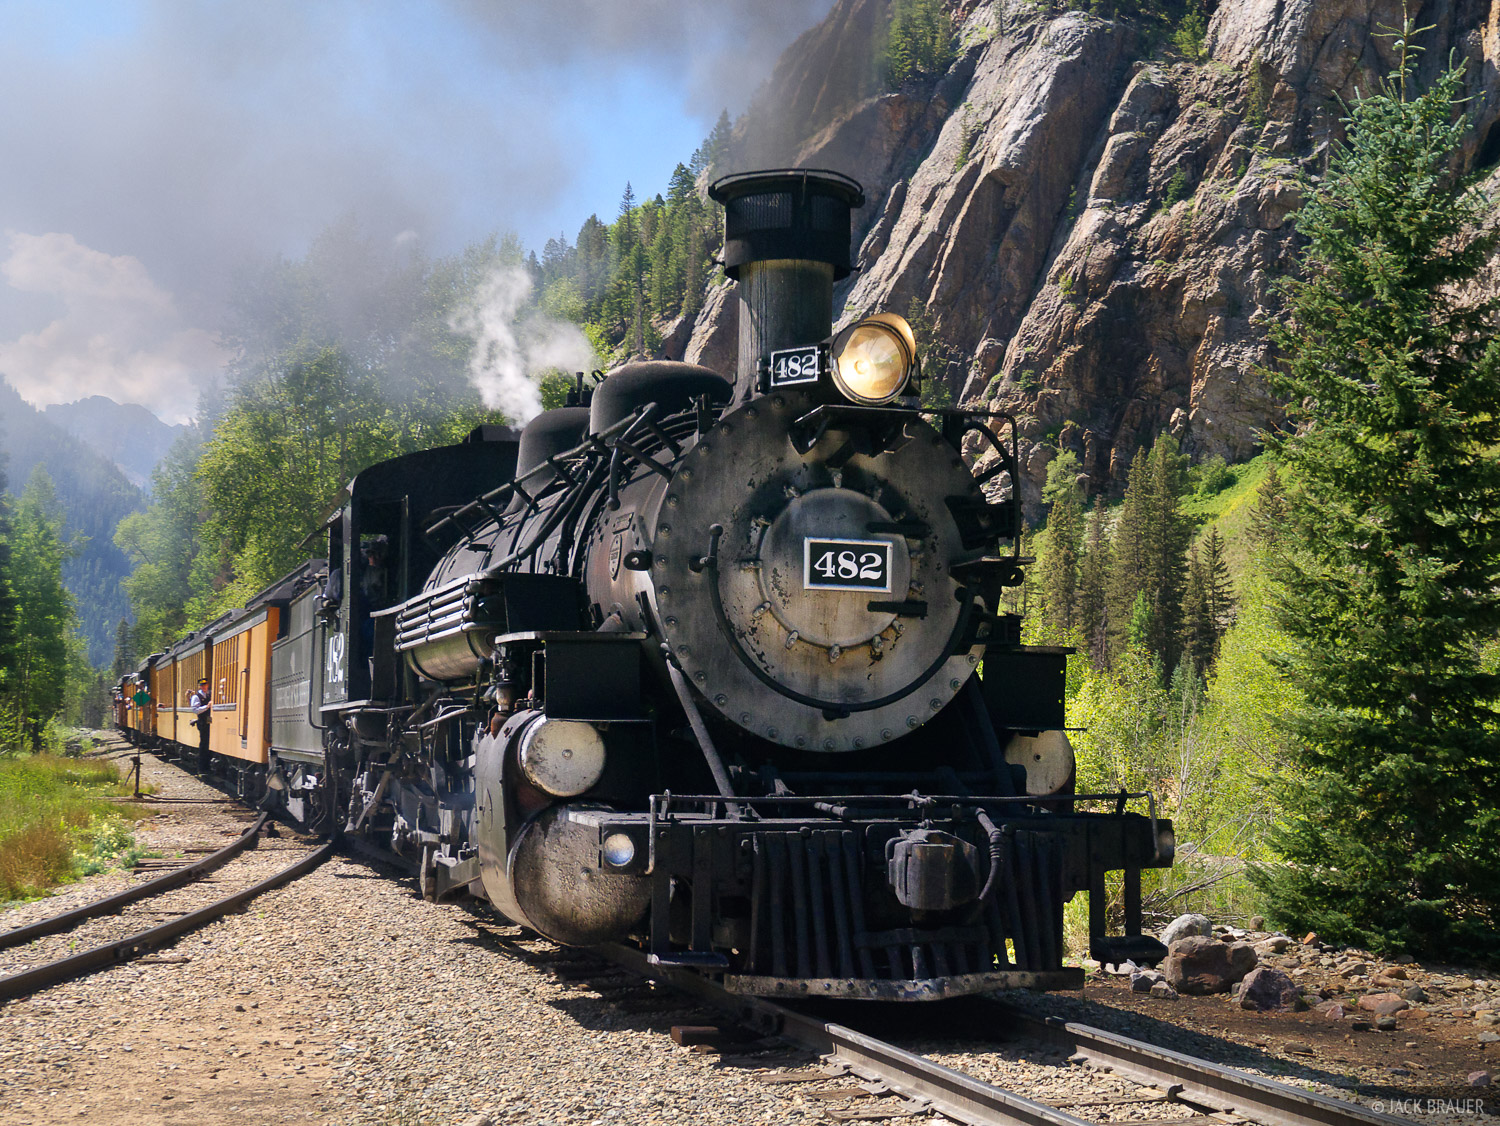 The scenic narrow guage railroad coal-fired train from Durango to Silverton picks us up at Elk Park.